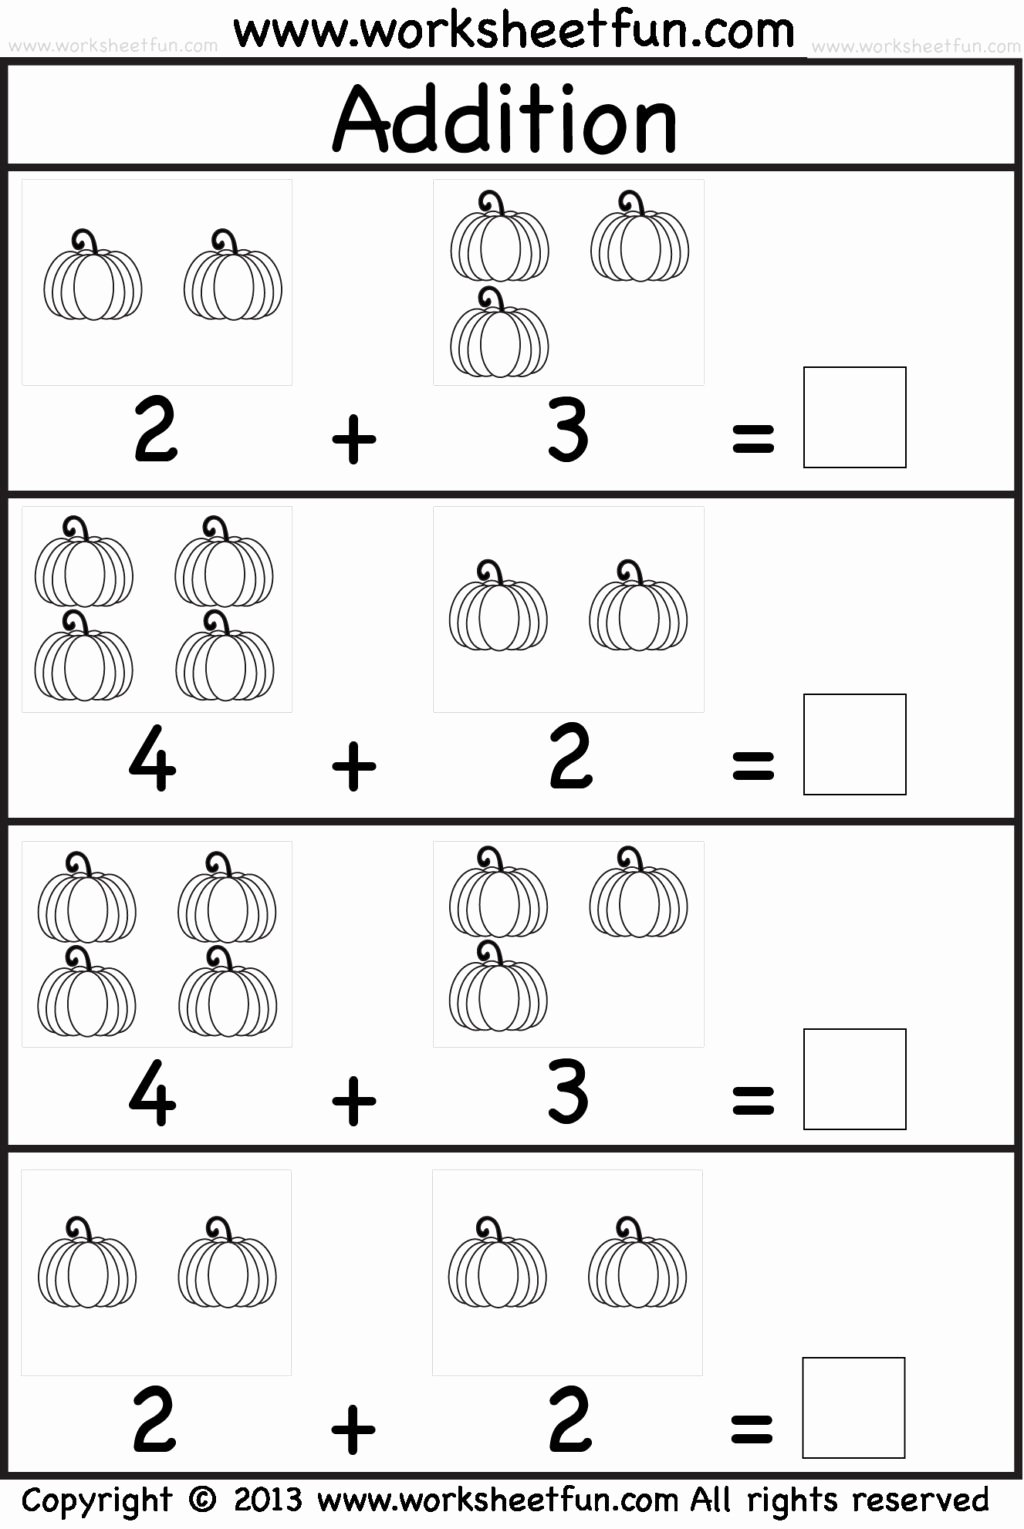 Math Worksheets for Preschoolers Addition Unique Worksheet Kindergarten Math Worksheets for Printable